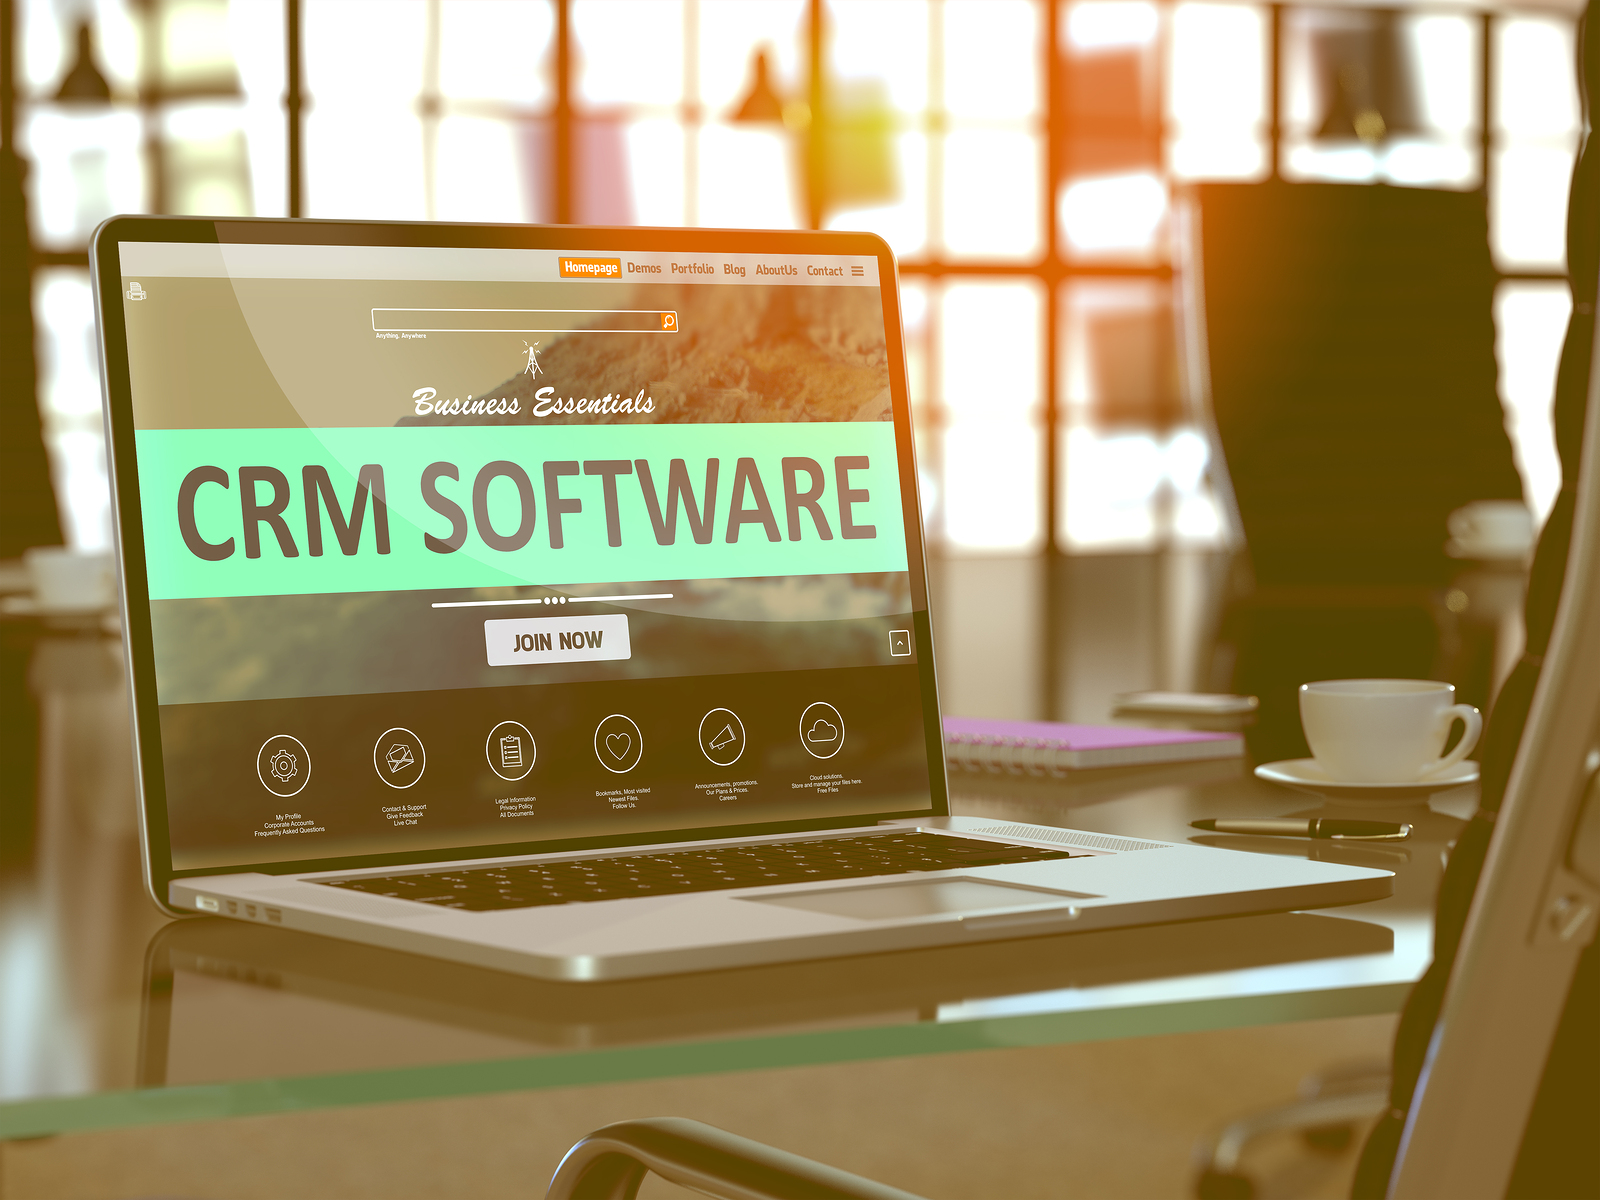 CRM - Customer Relationship Management - Software Concept. Closeup Landing Page on Laptop Screen  on background of Comfortable Working Place in Modern Office. Blurred, Toned Image. 3D Render.